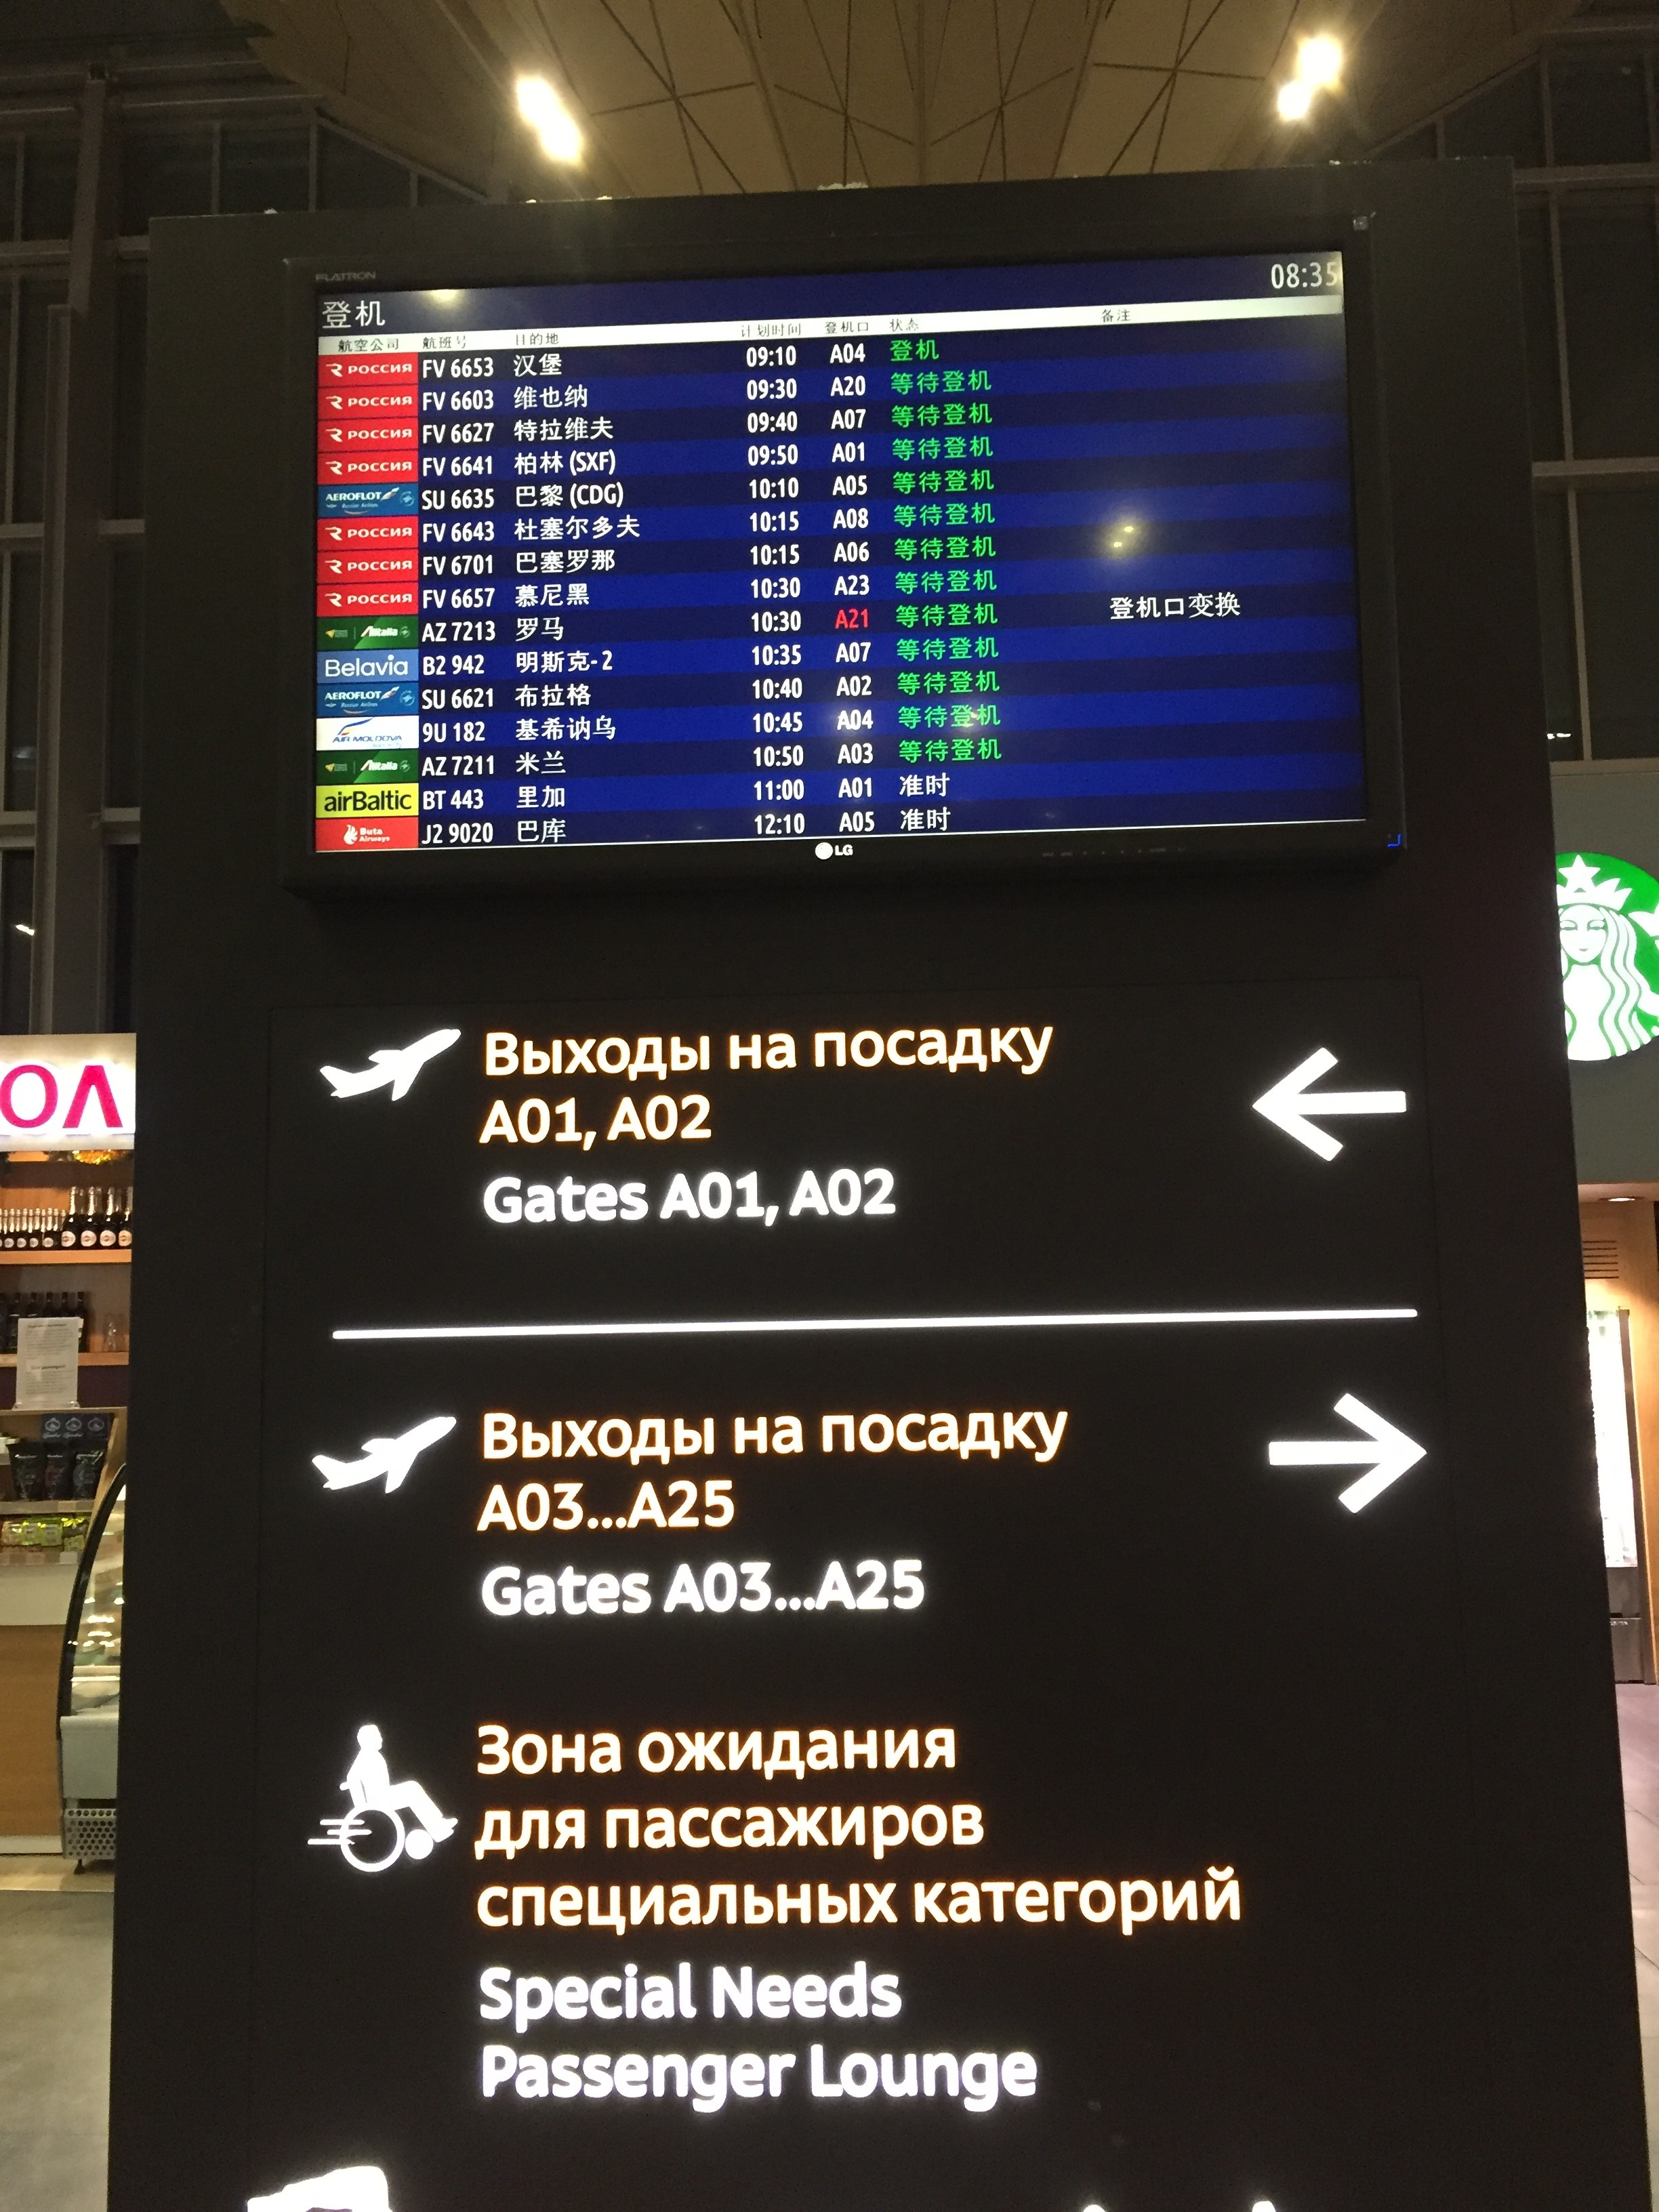 A curious thing I noticed is that all indications on the screens where also given in Chinese. I had seen this in airports like Helsinki, that are very focused on Chinese traffic, but interesting to see it at Pulkovo, where there are a very limited number of connections to China (perhaps they receive many Chinese tourists on tours that fly to and from Moscow and other intermediate destinations)